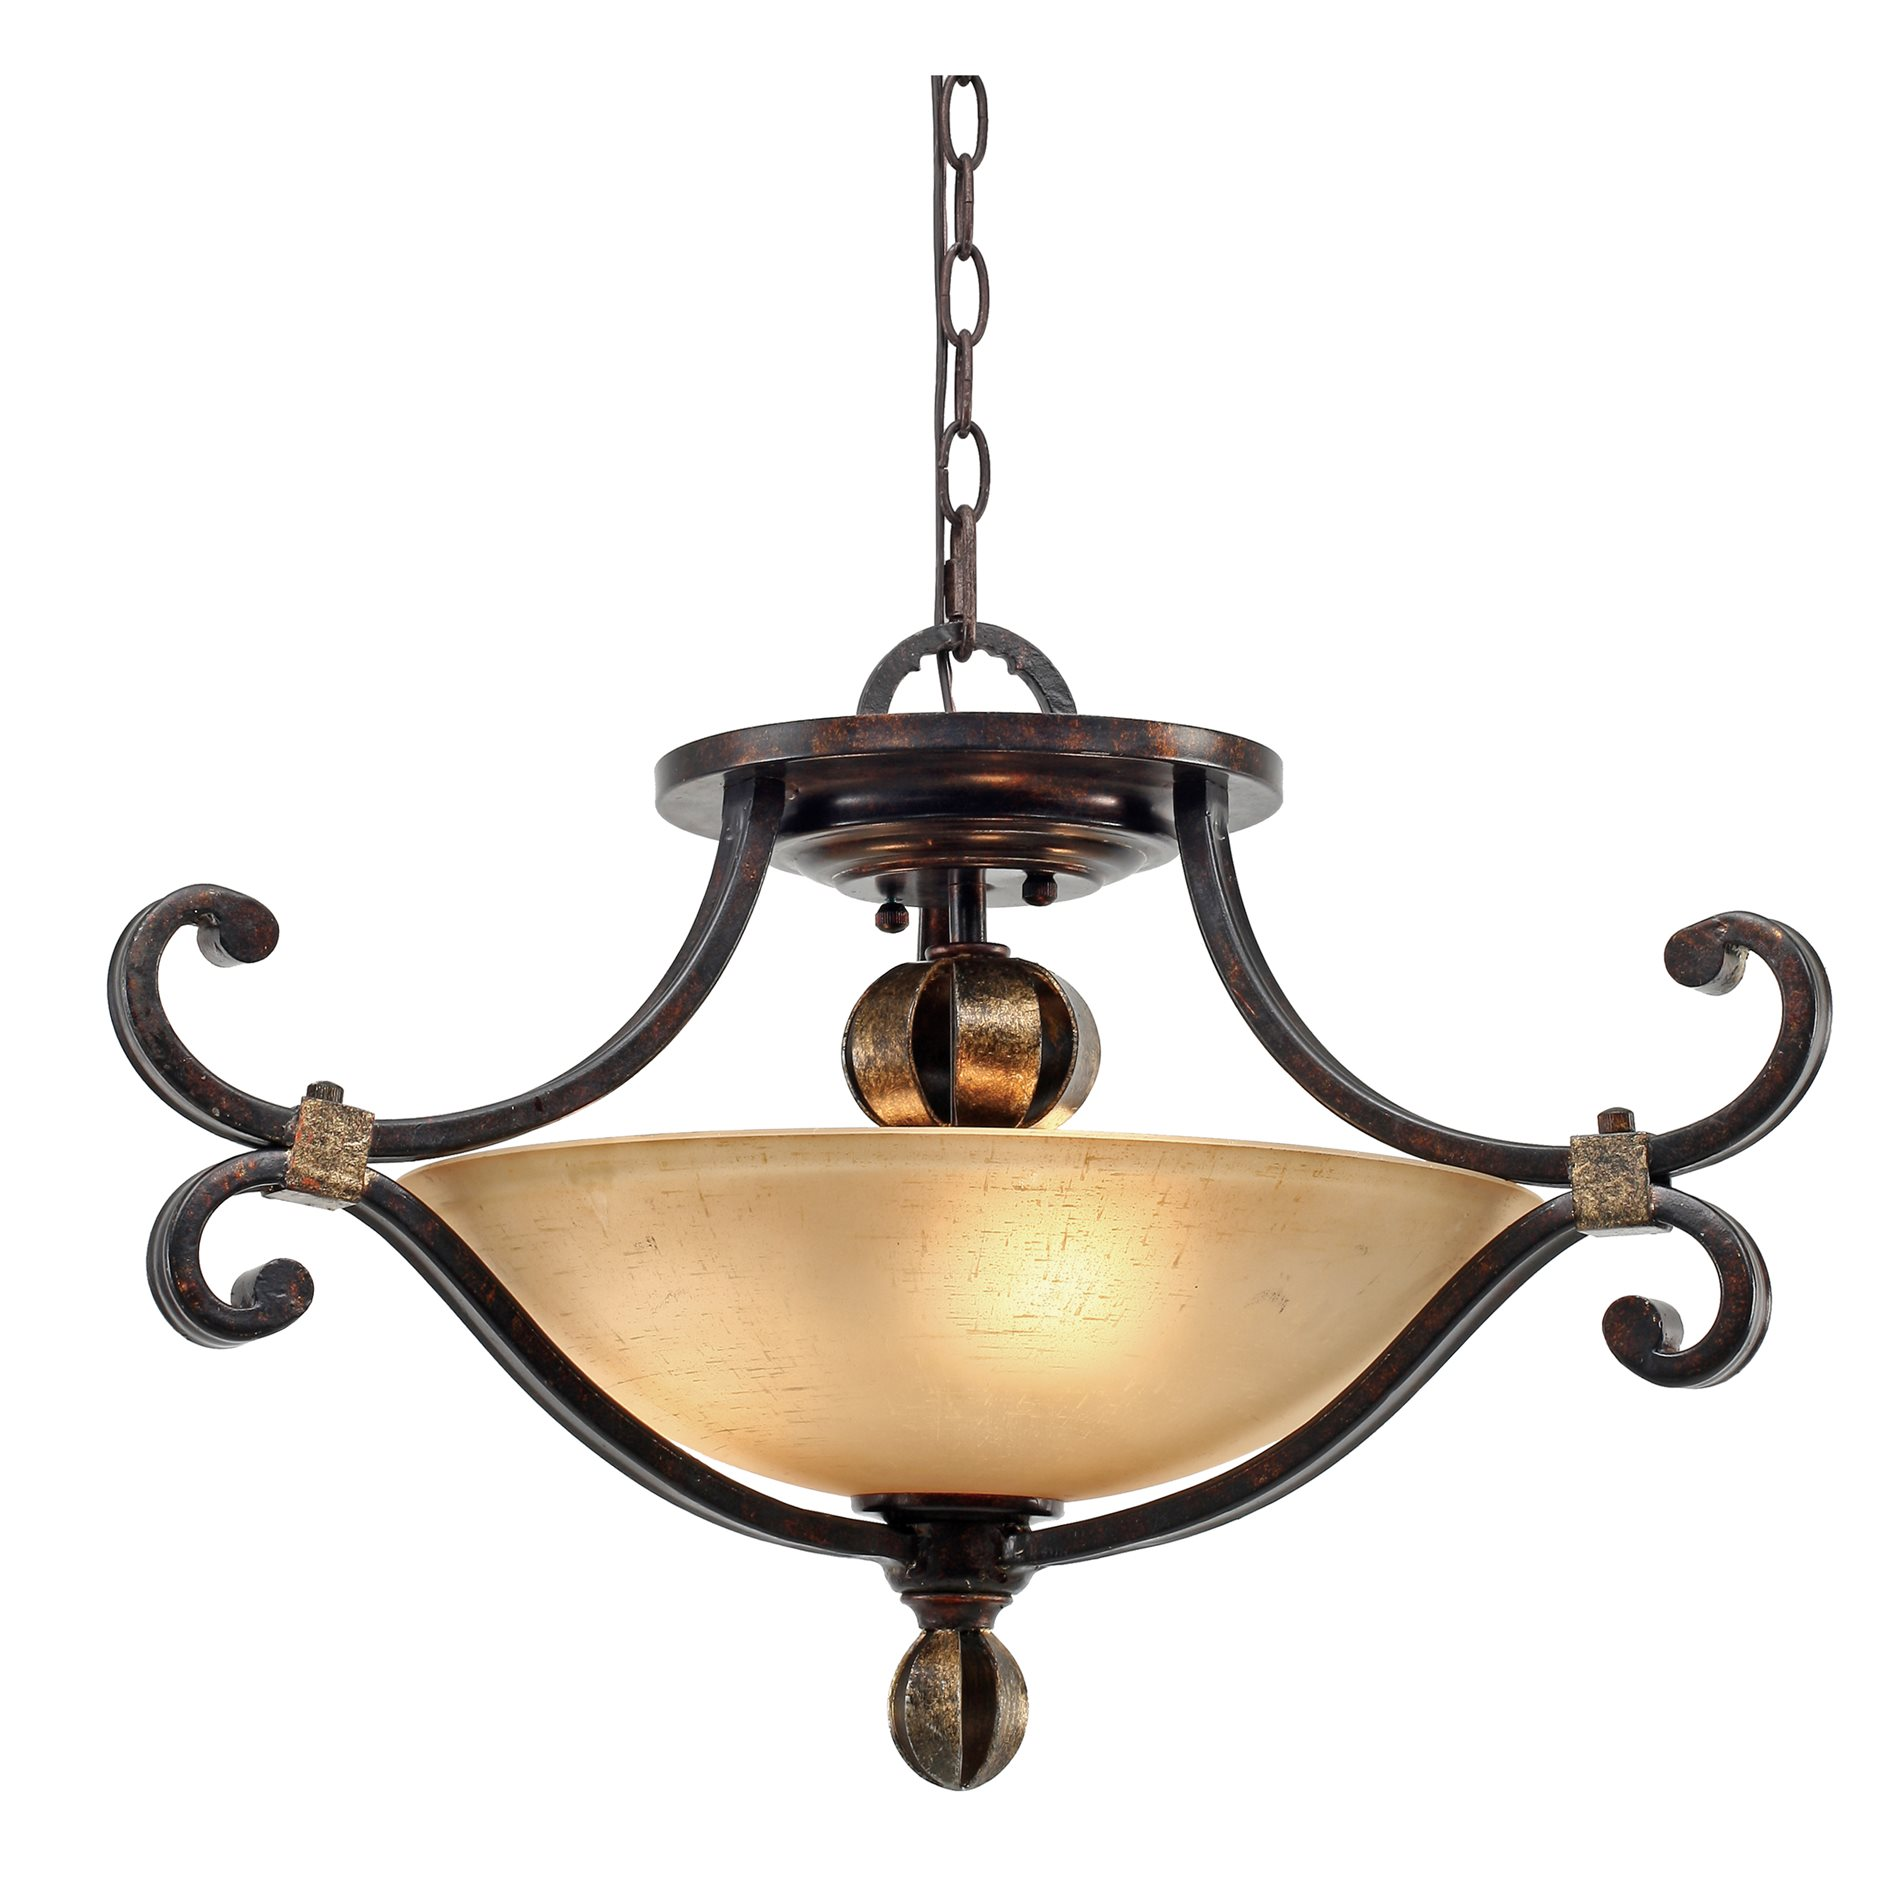 Golden lighting 3966 sf fb portland traditional semi flush mount ceiling light gdl 3966 sf fb